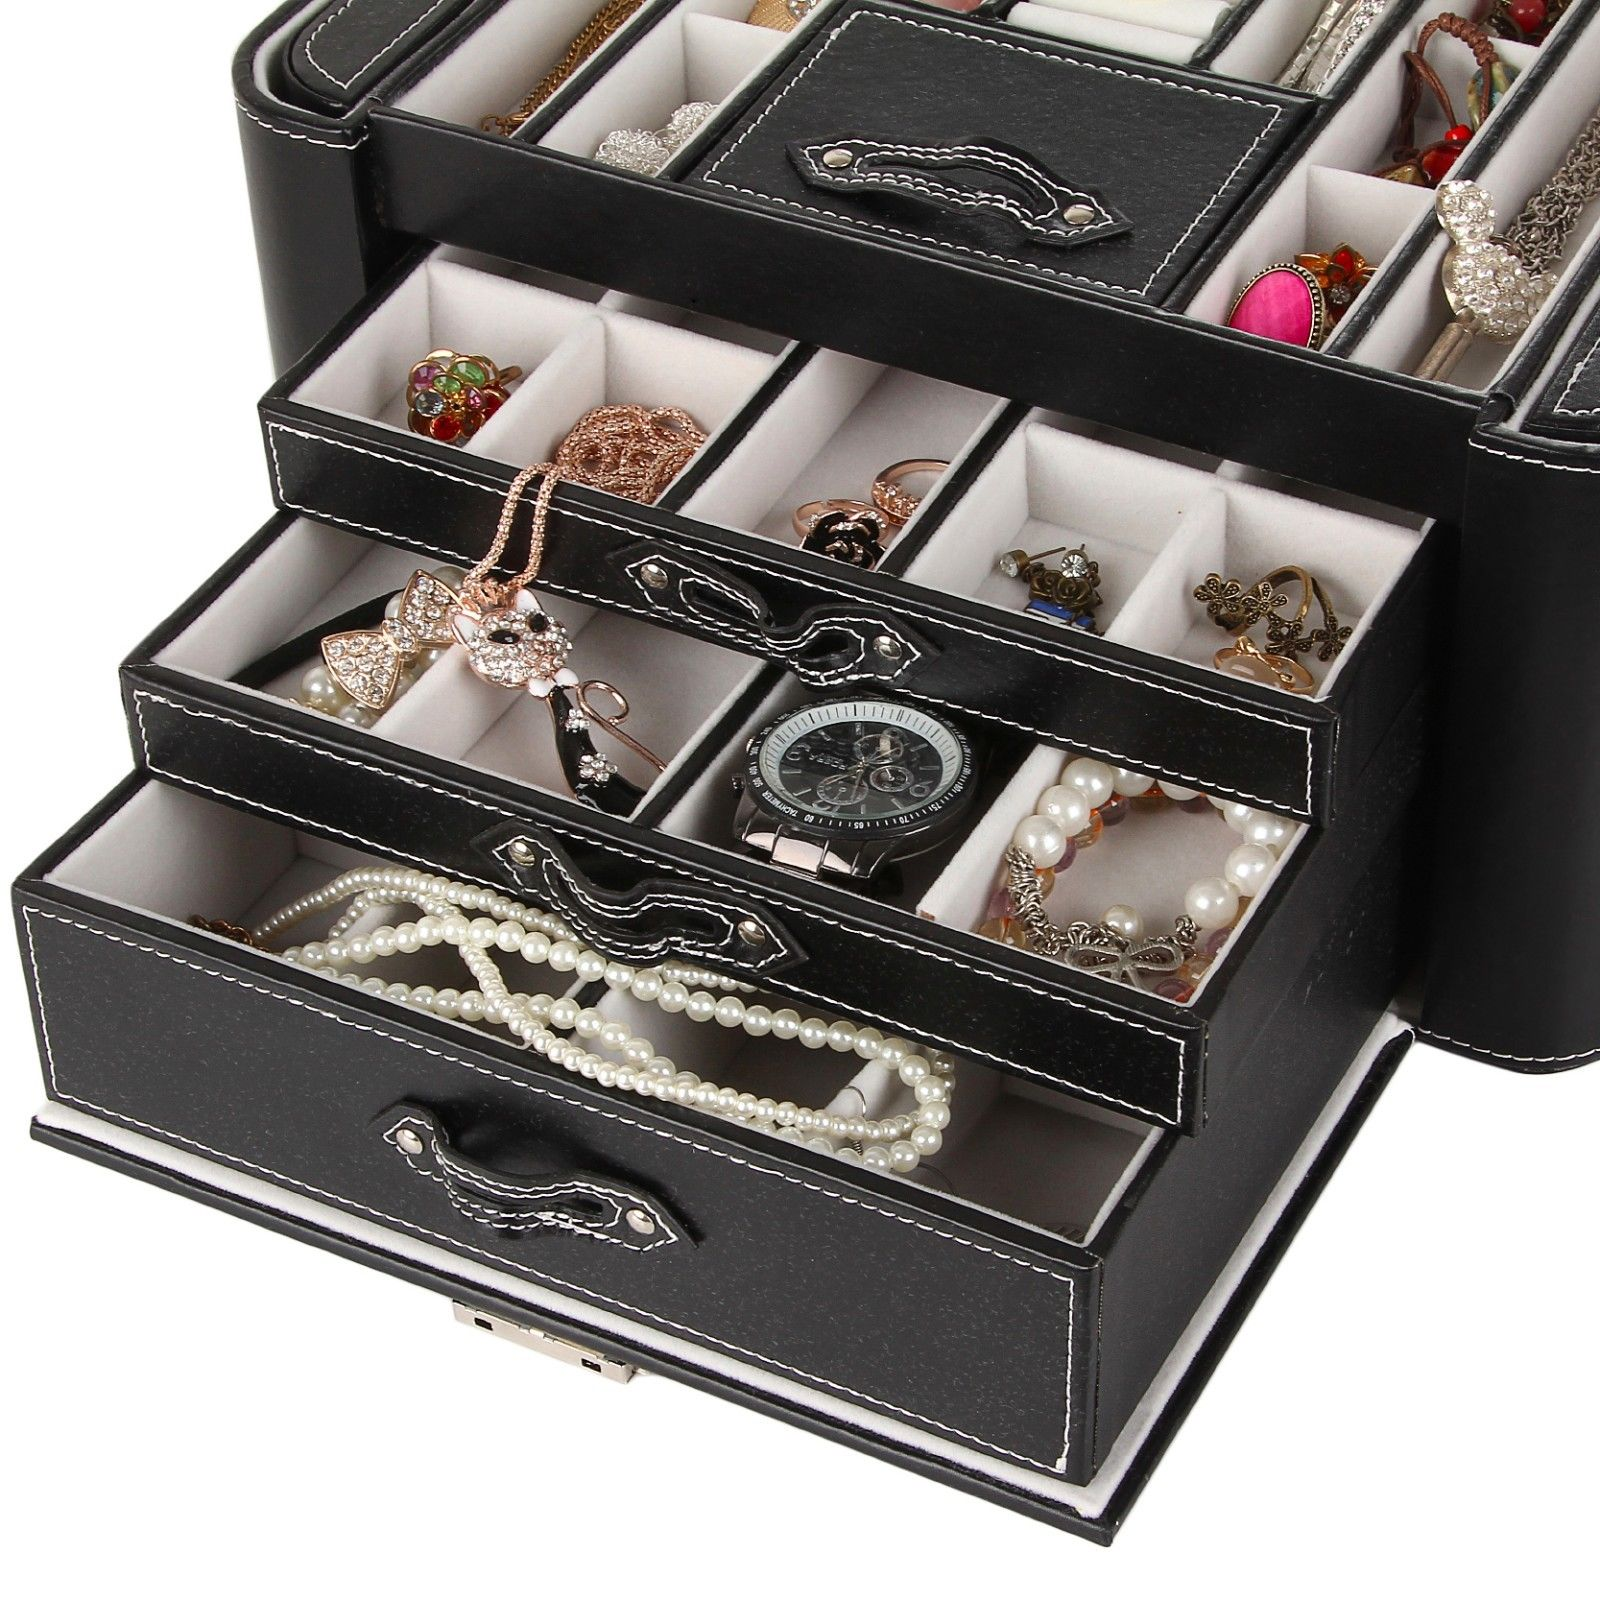 Large black white faux leather jewelry box case storage for Jewelry box with key